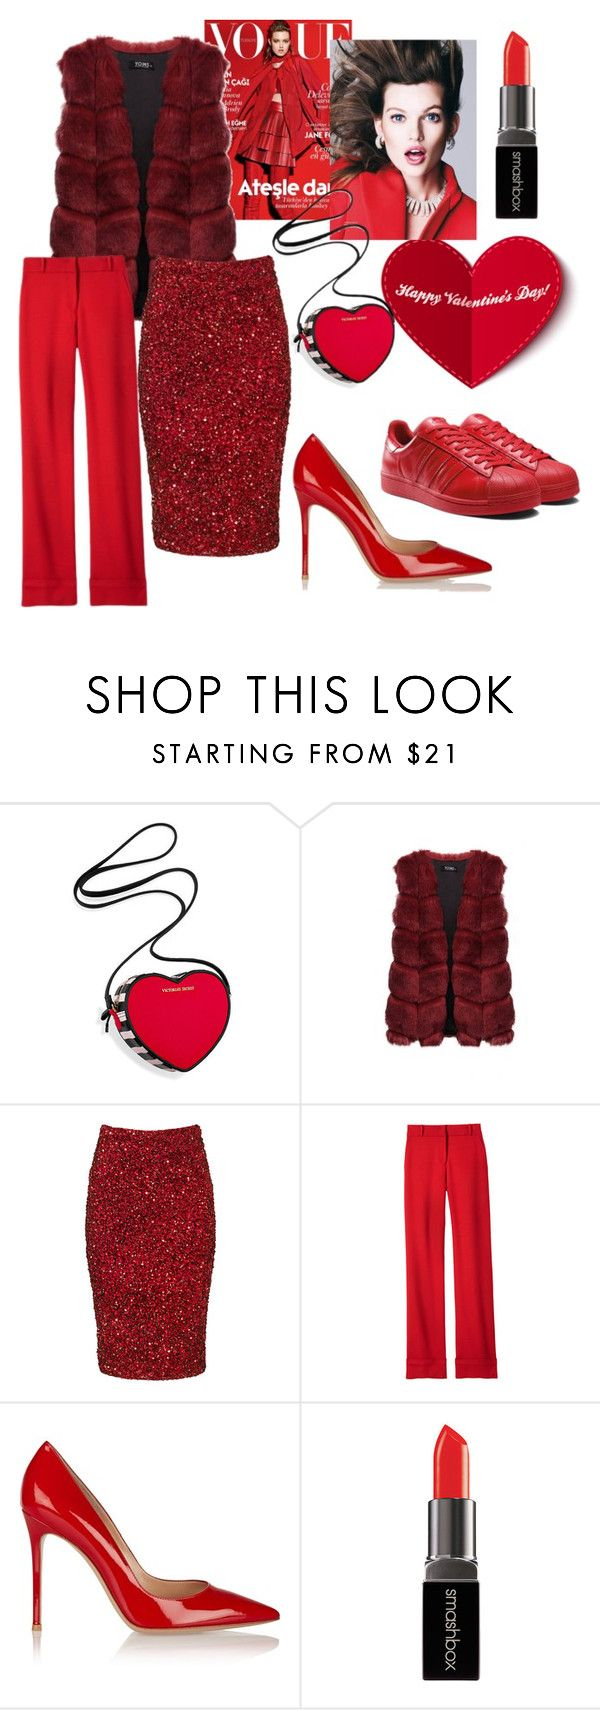 Valentine's Day by kimvictoria on Polyvore featuring Parker, Laveer, Victoria's Secret, Smashbox, women's clothing, women's fashion, women, female, woman and misses